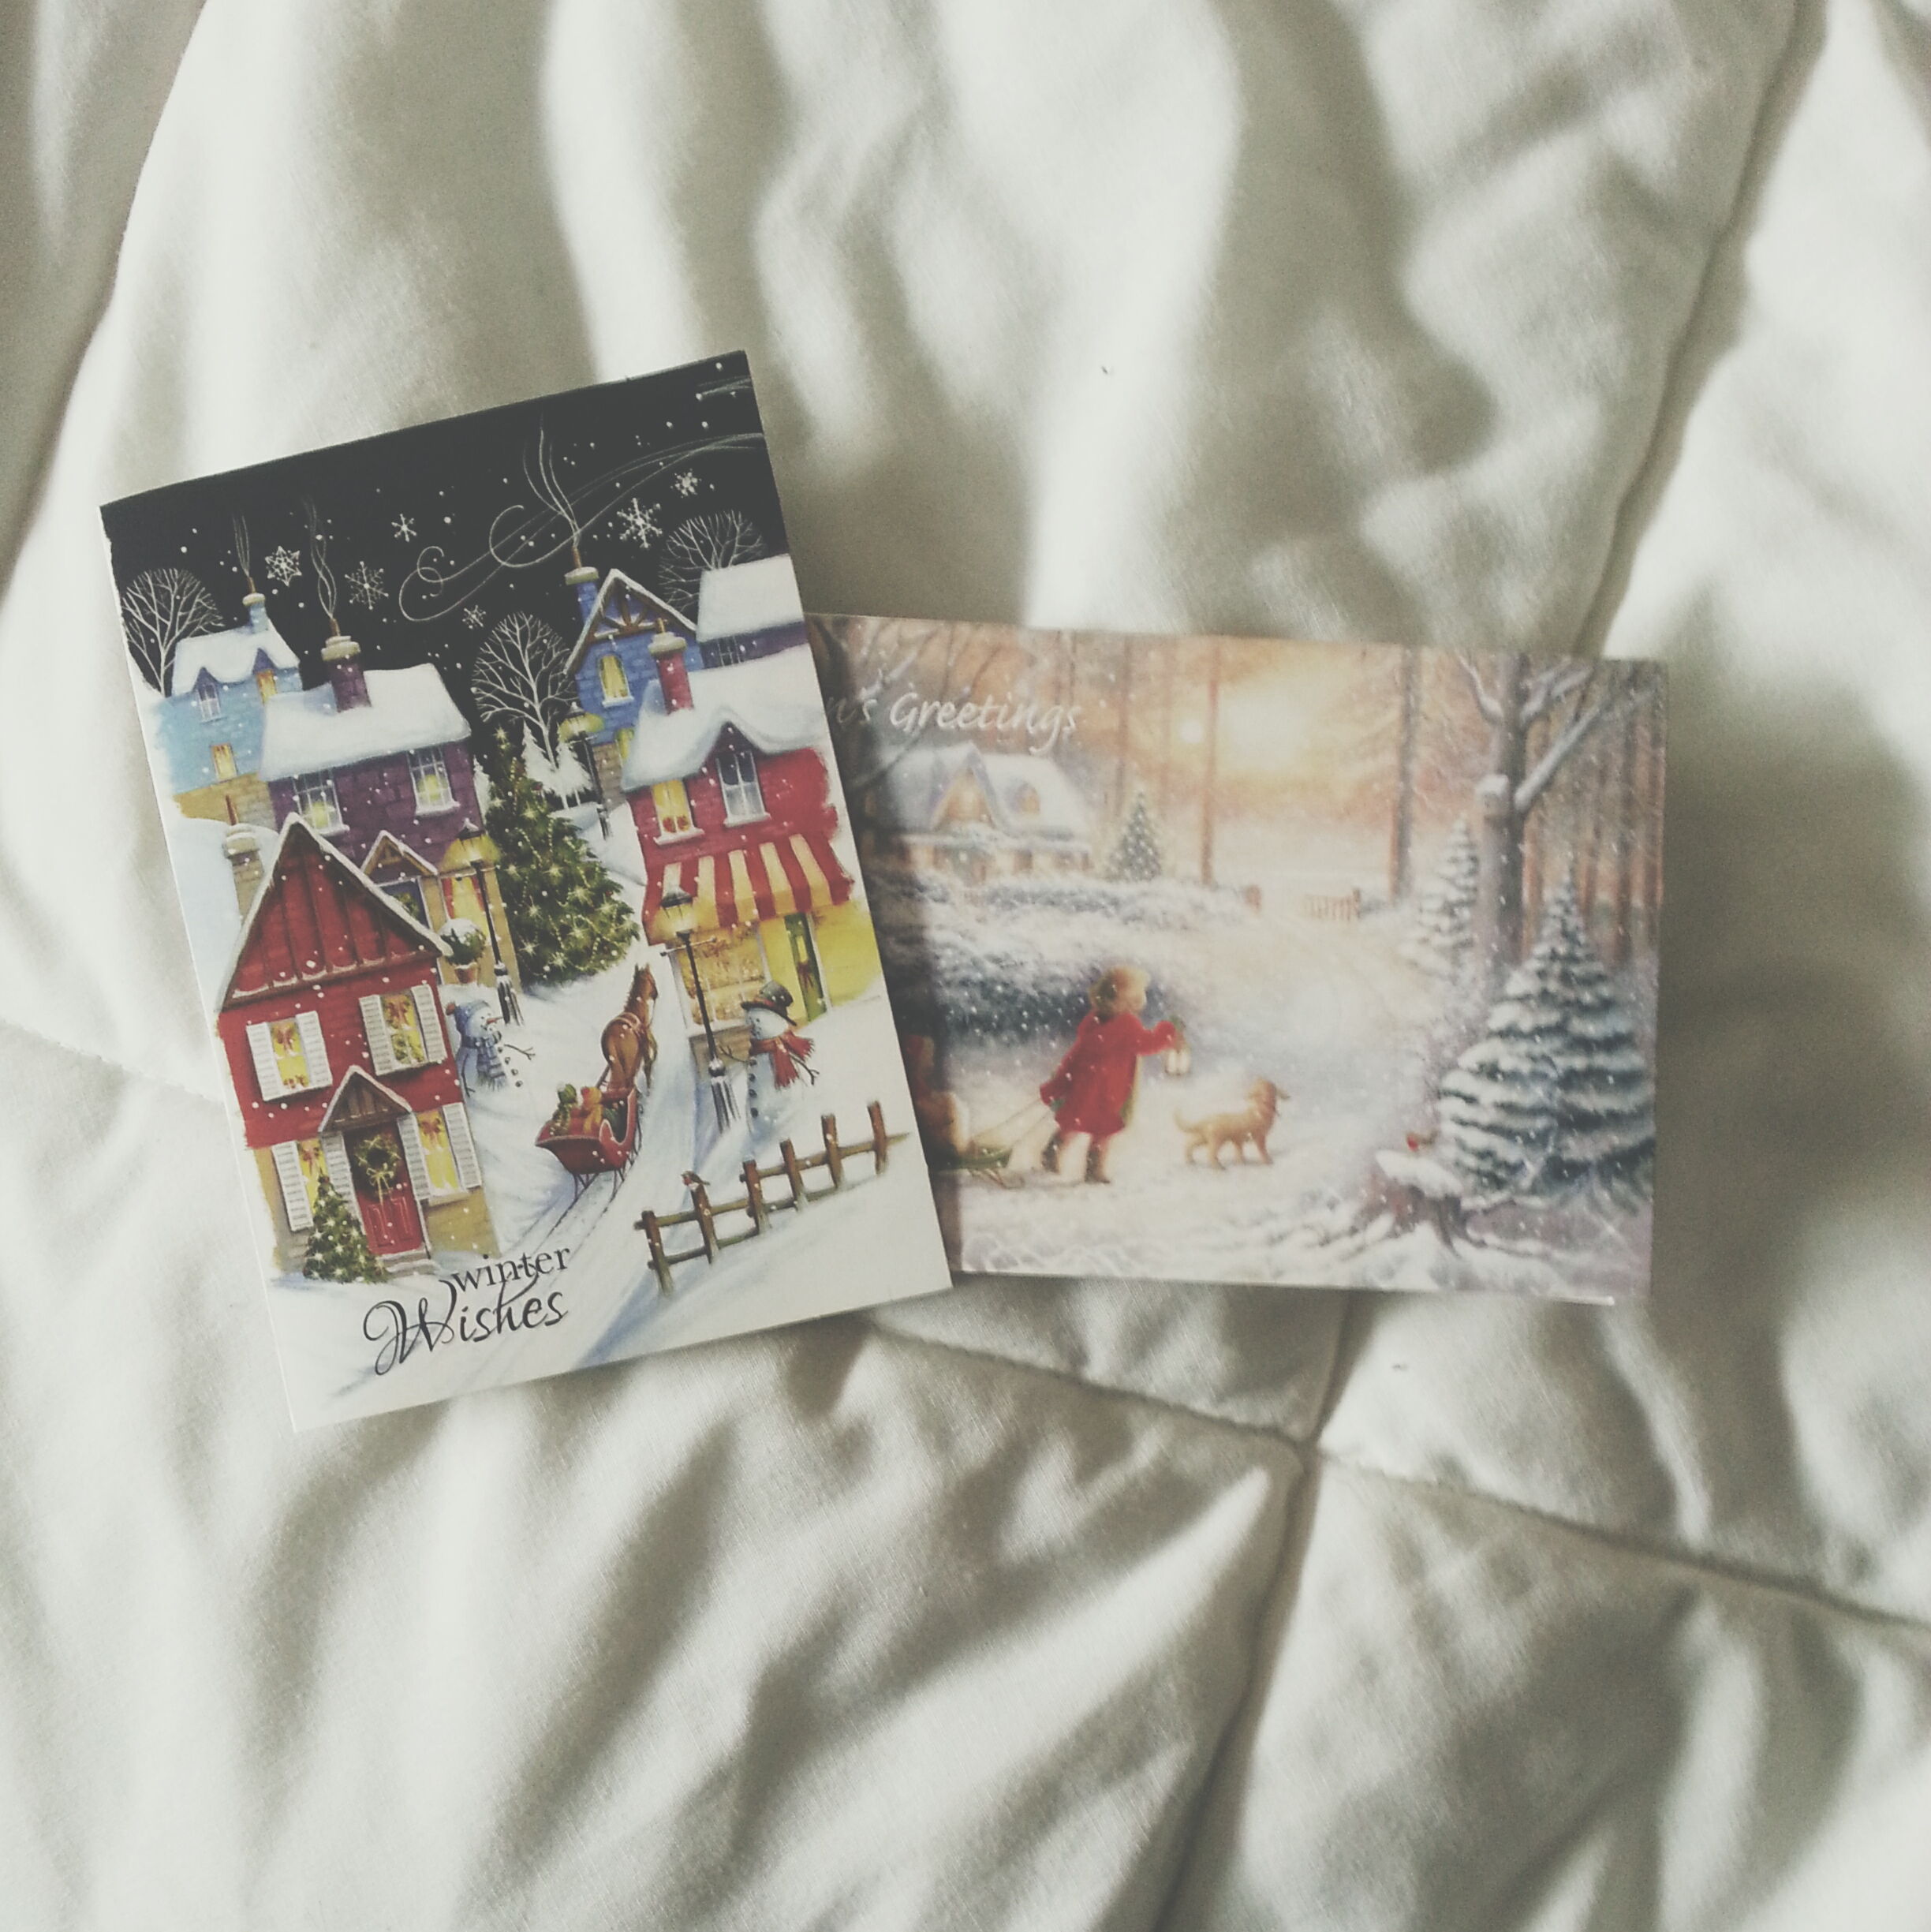 Two Christmas cards lying on a bed